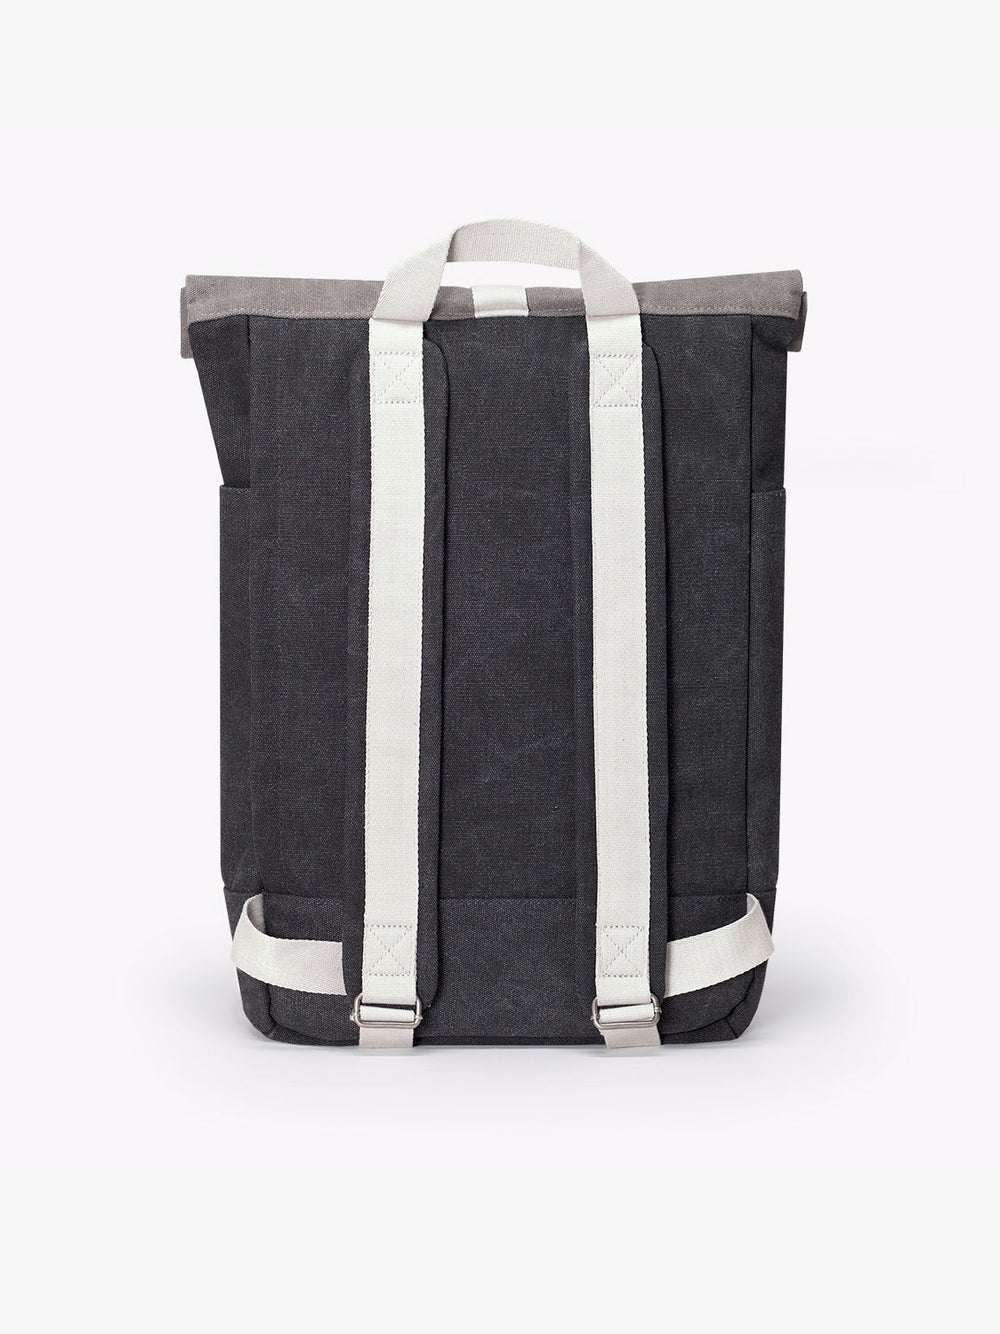 Adjustable shoulder straps and top handle feature the Hajo Backpack